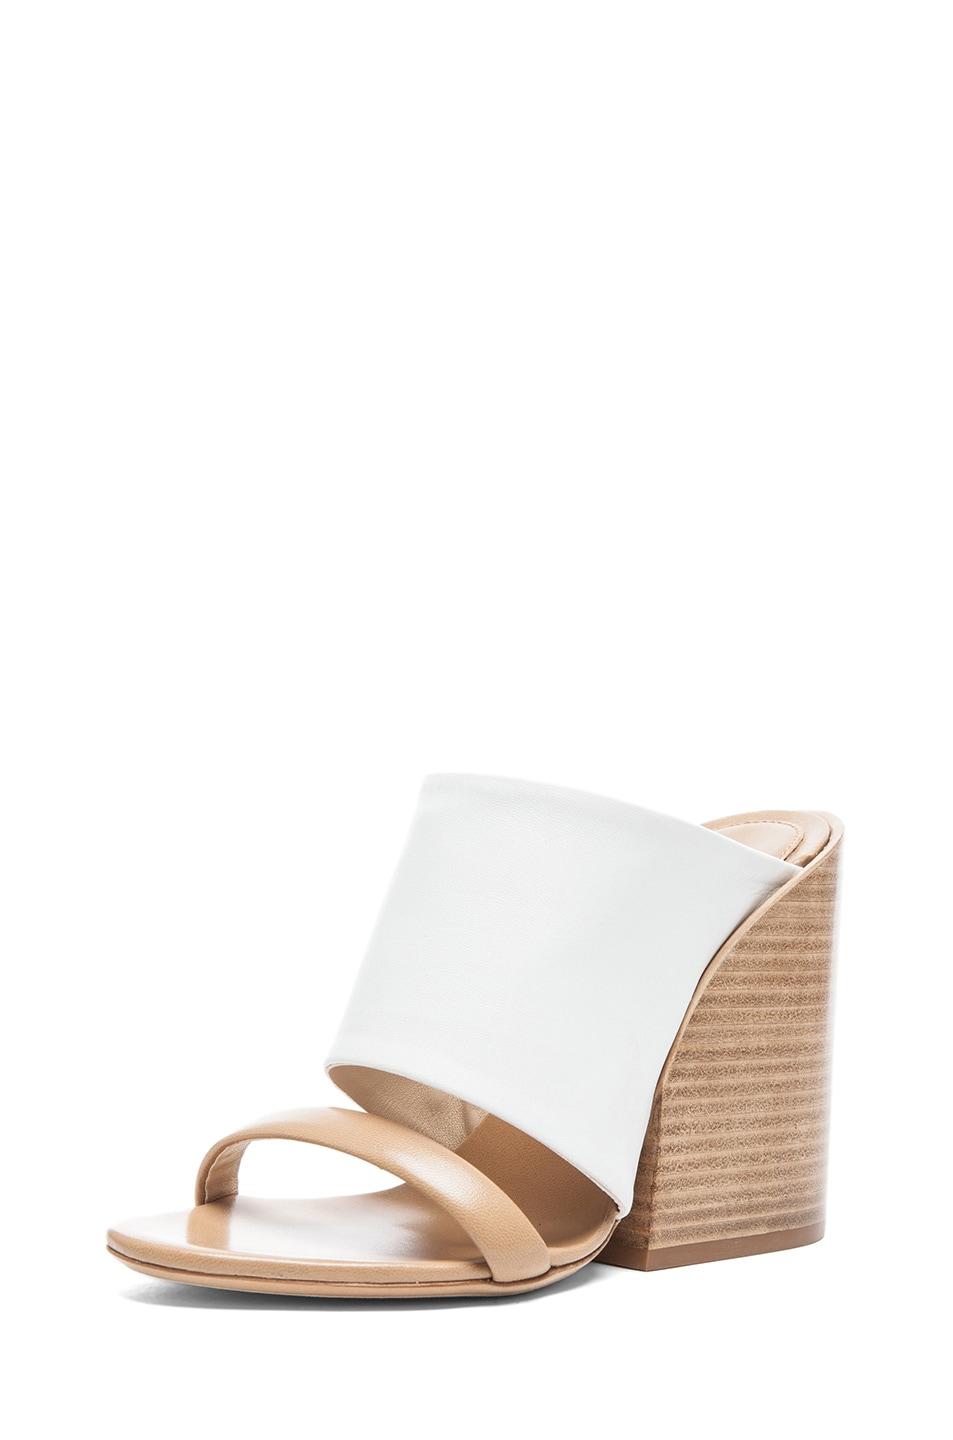 Image 2 of Chloe Mule Nappa Leather Sandals in White & Tan